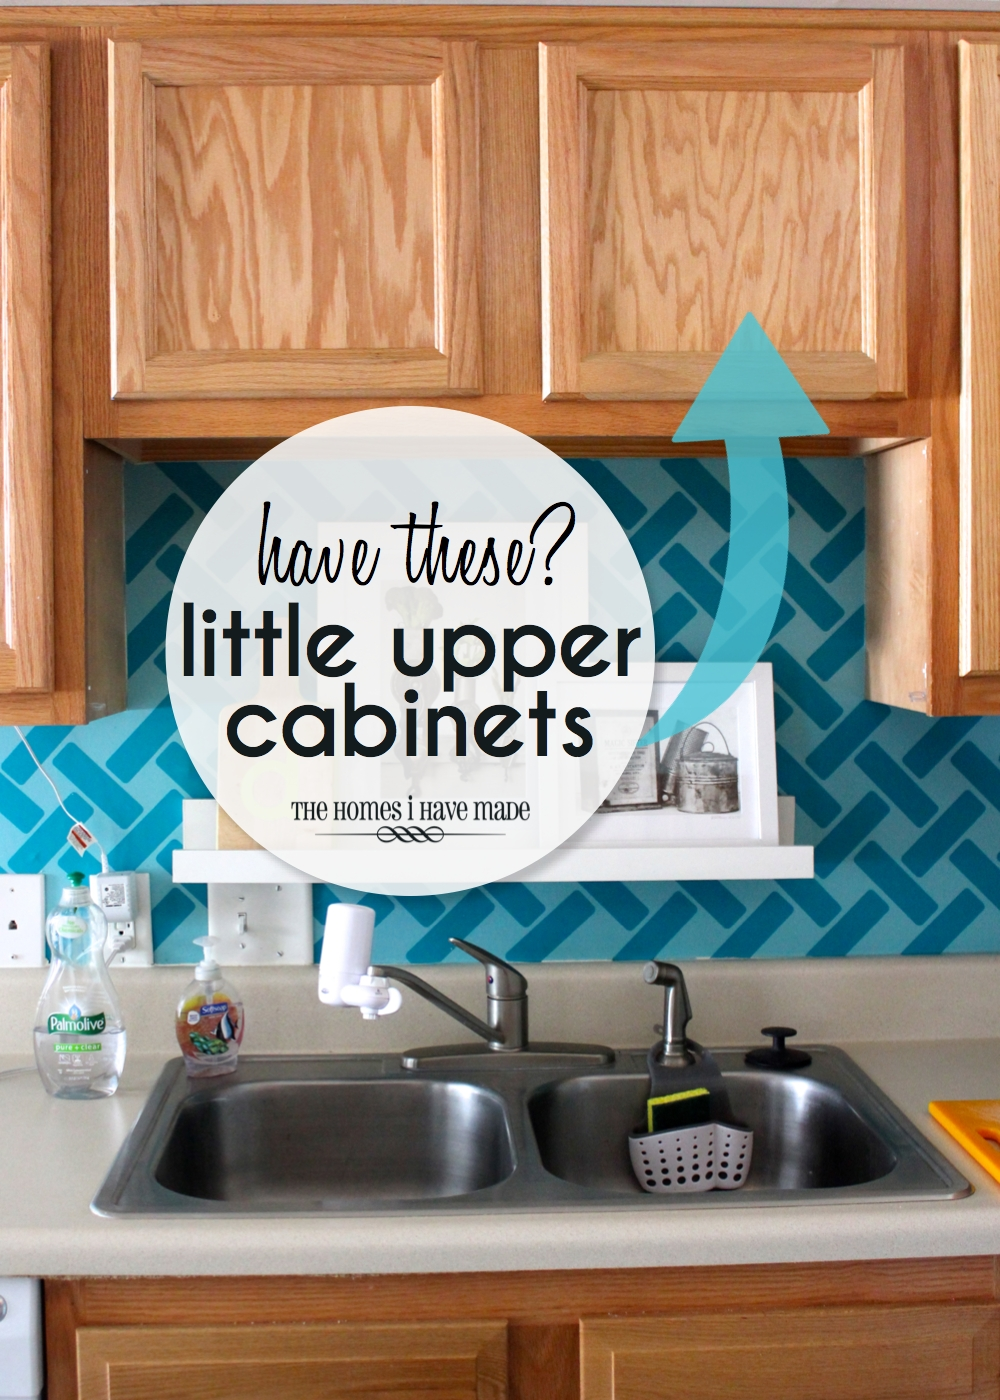 Storage Ideas for Little Upper Cabinets | The Homes I Have Made